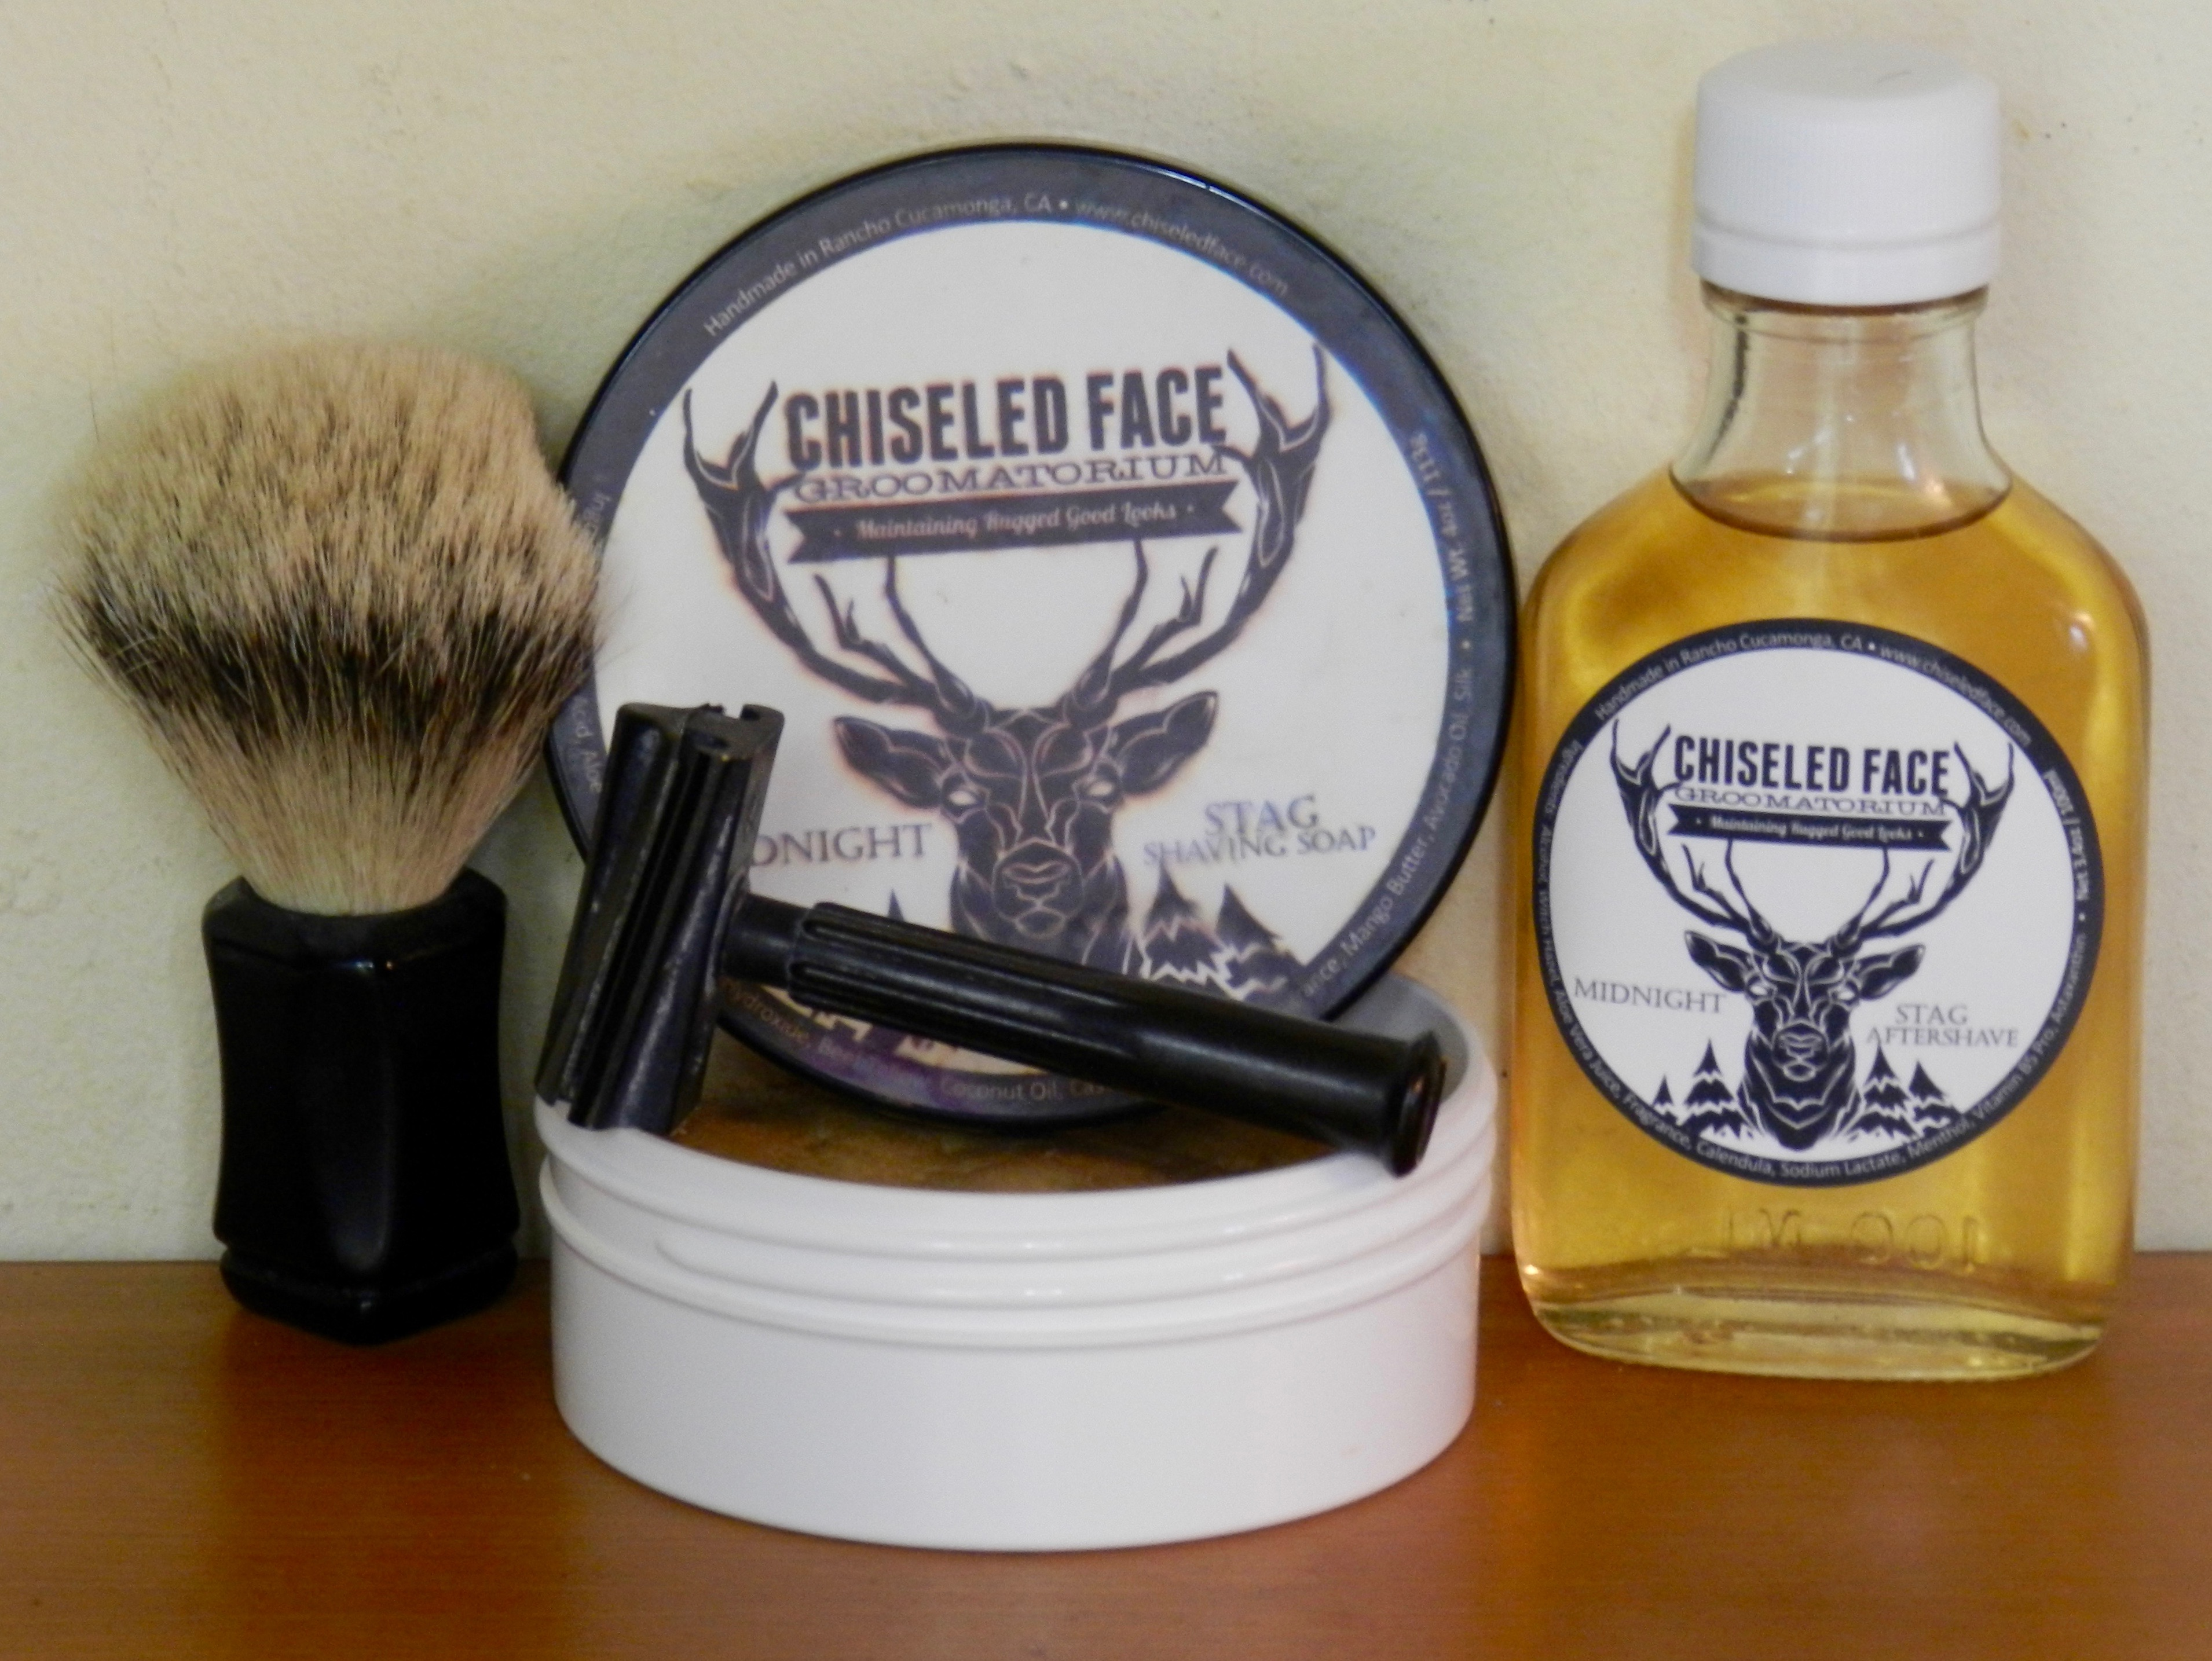 whipped dog brush with midnight stag and the eros slant later on